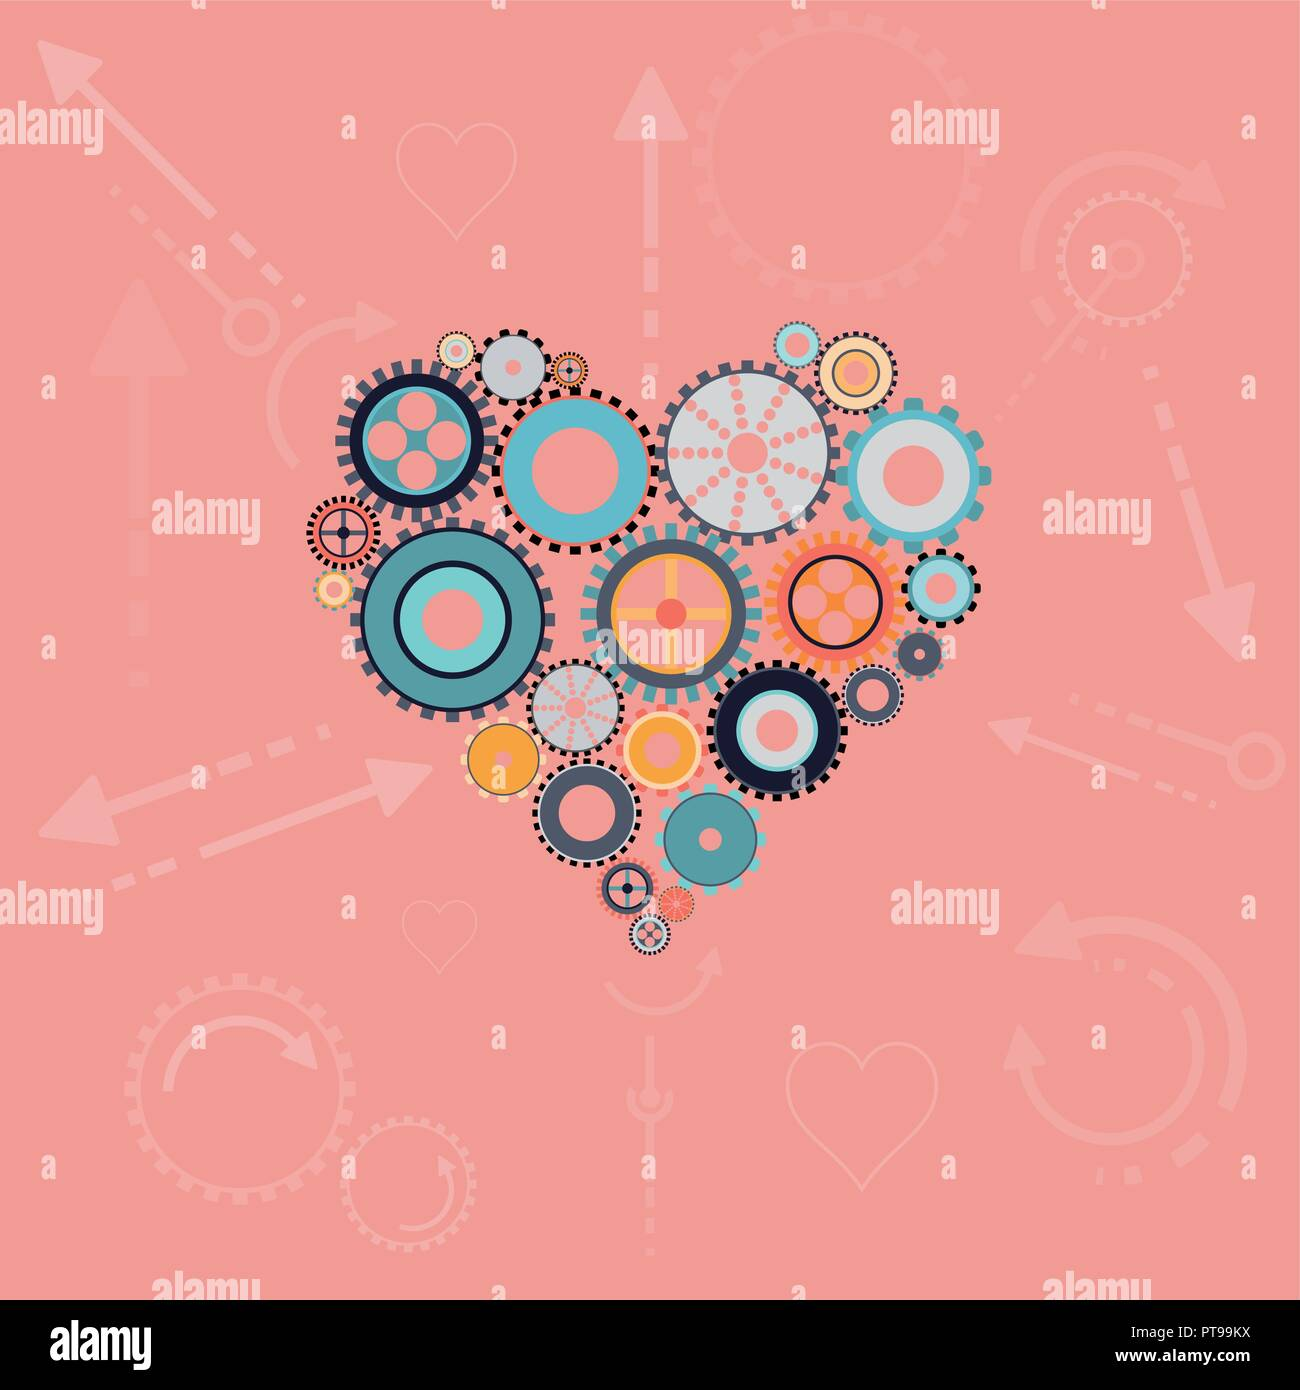 Perfect heart concept in flat design - Stock Vector